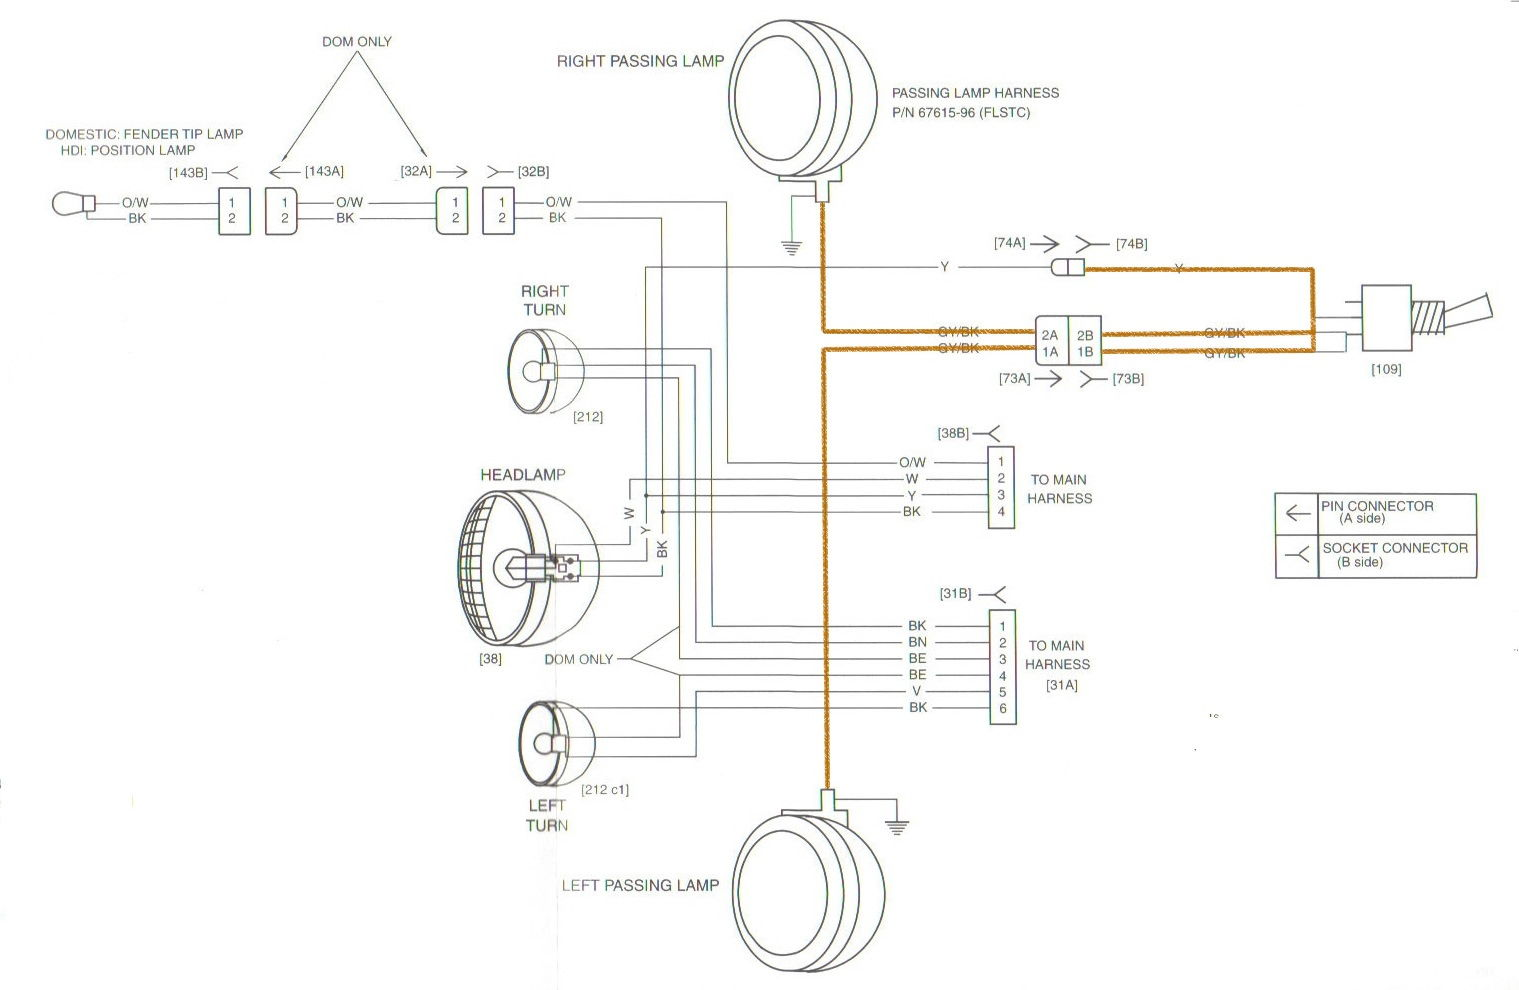 Harley Davidson Softail Springer Wiring Diagram